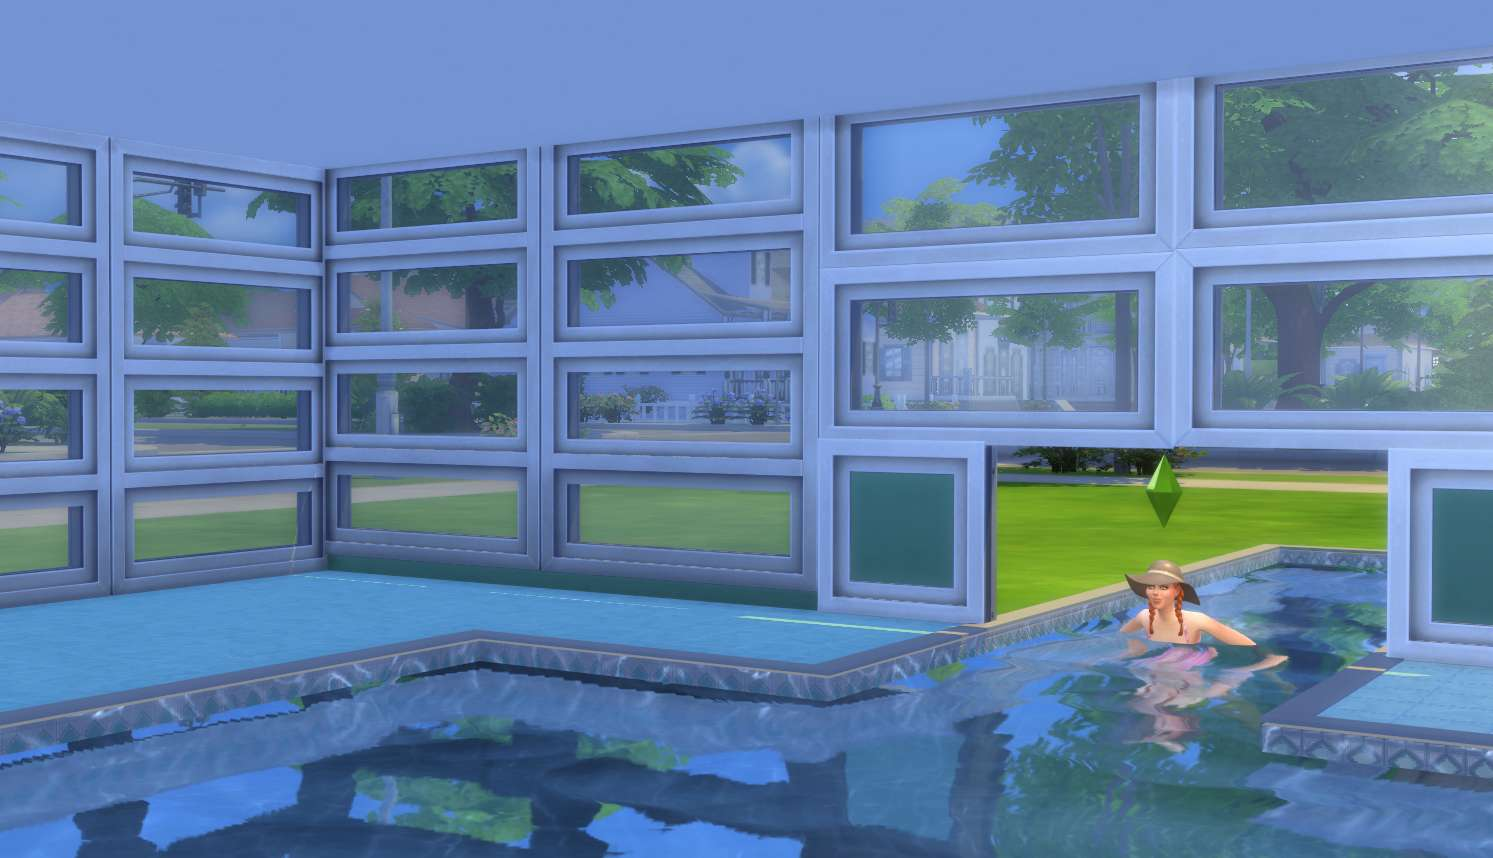 House Under Pool the sims 4 building: landscaping, pools (indoor/outdoor)